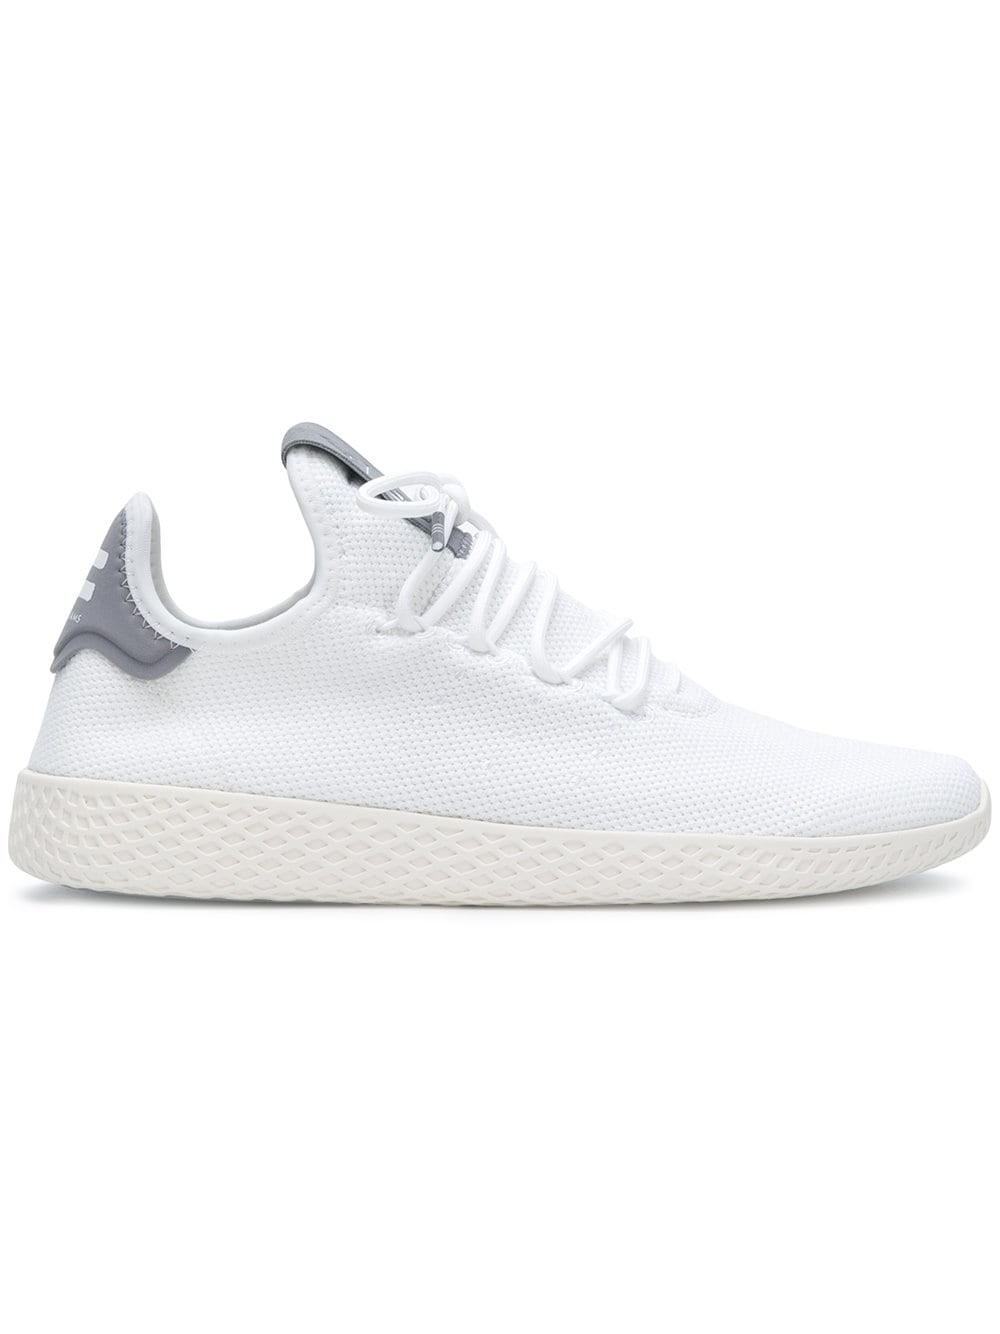 Adidas Originals Pharrell Williams Tennis HU Blanche B41793